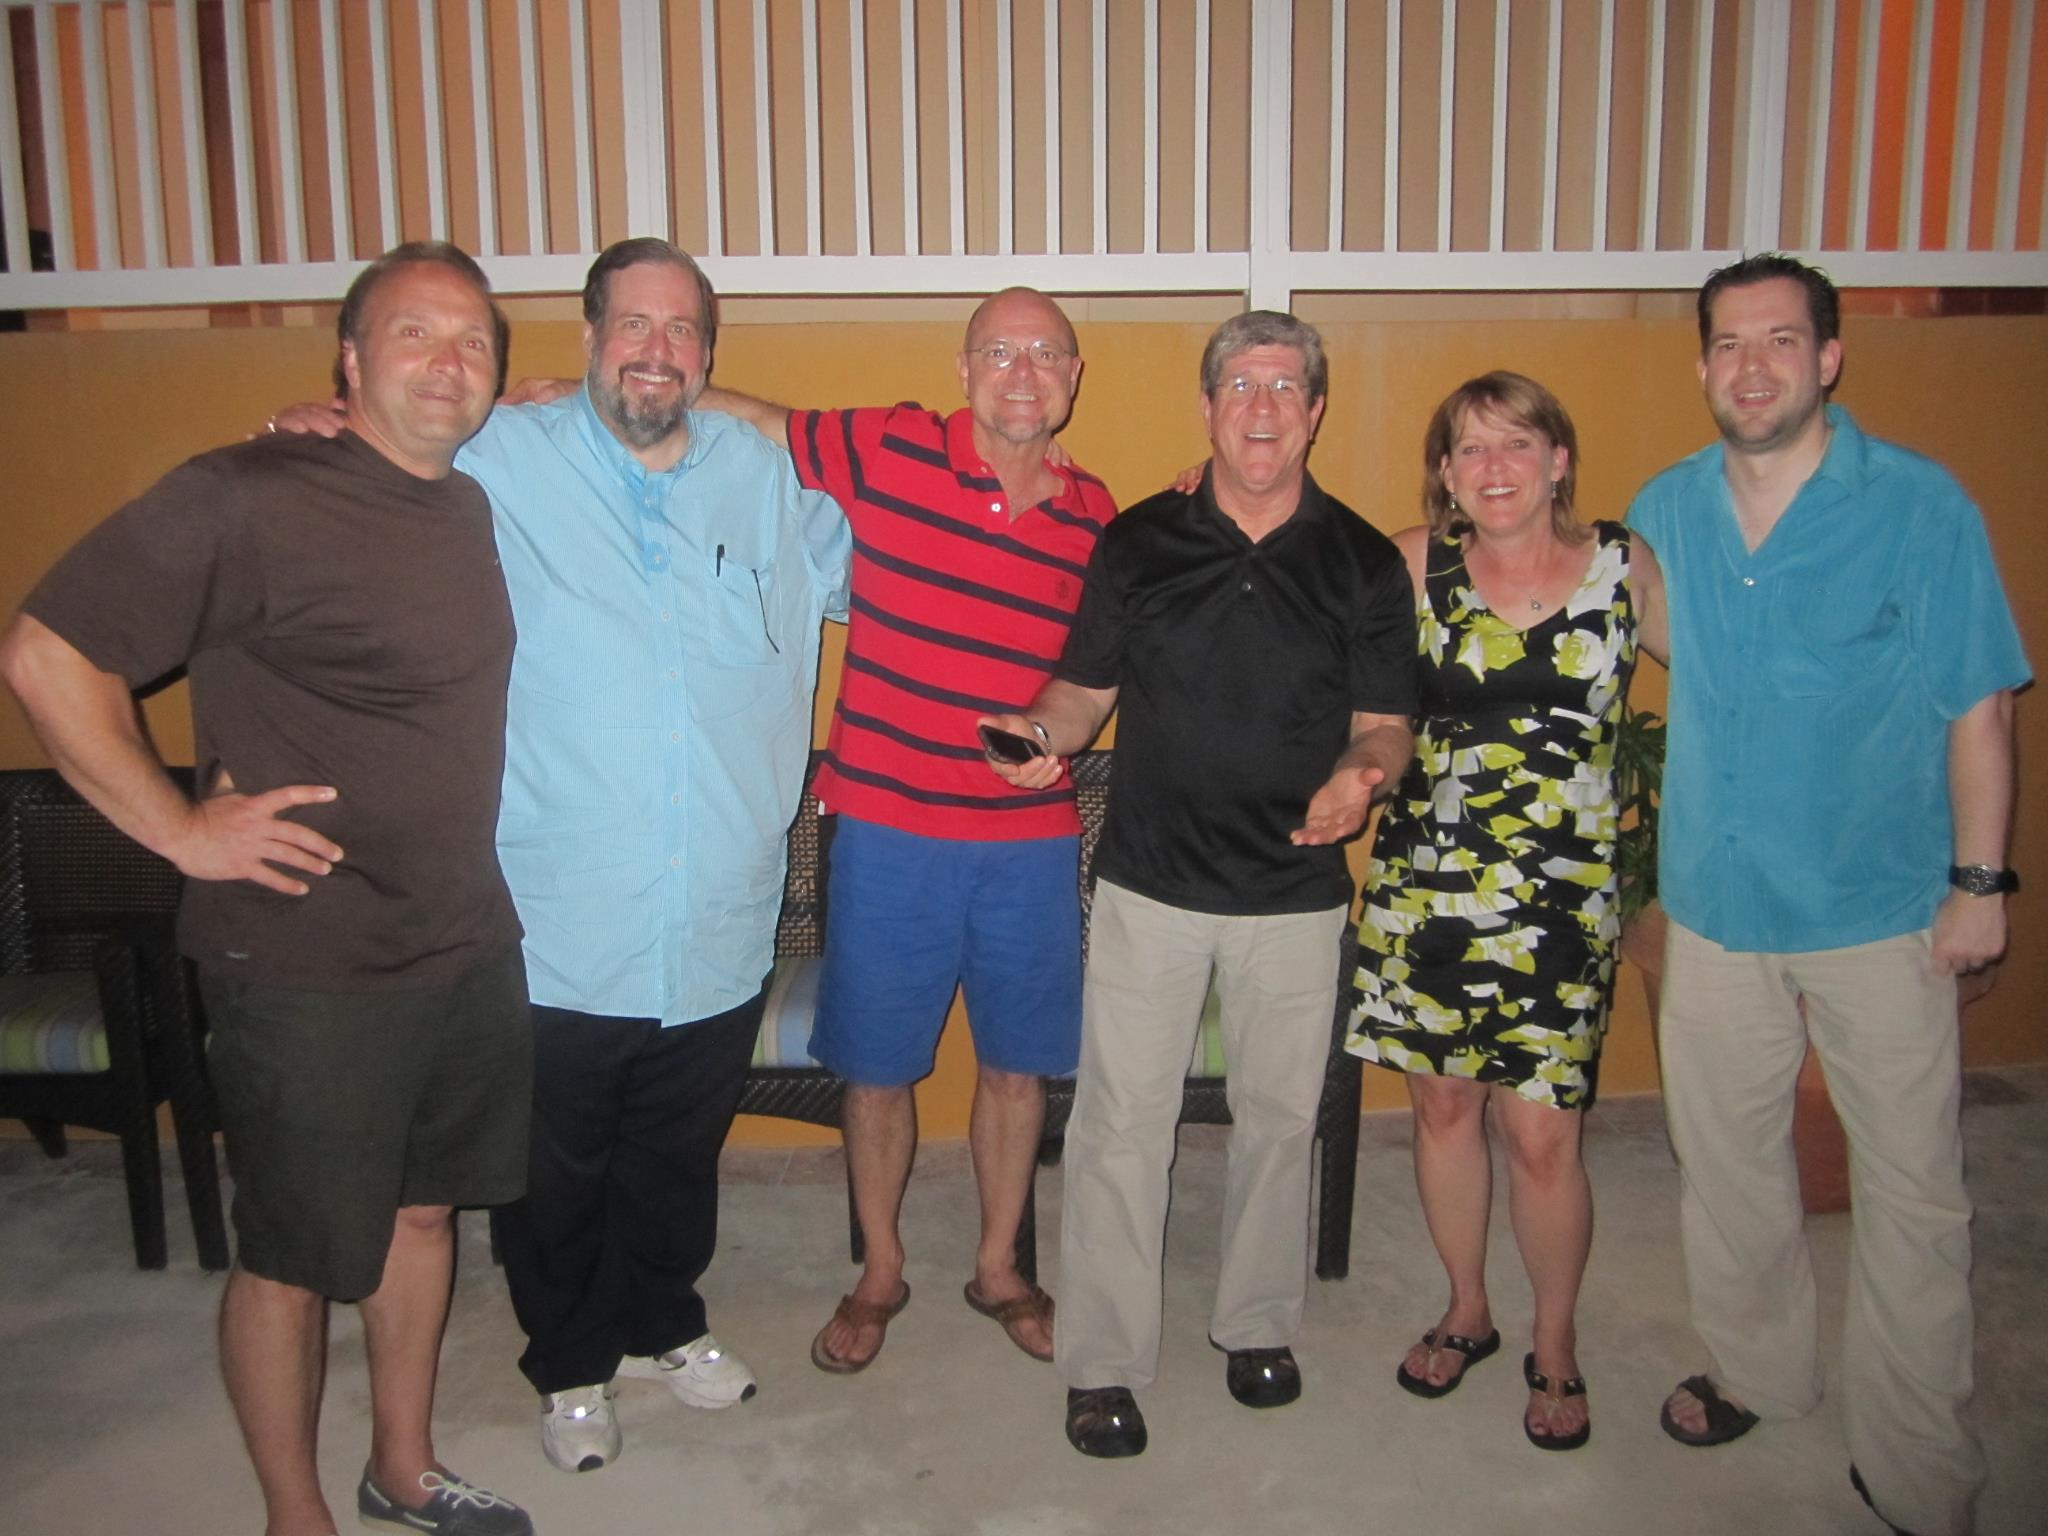 These are some legendary CBS Radio classic hits jocks! (Joe Cortese/WODS, Bob Schumann/WOMC, Bobby Mitchell/WOMC, Broadway Bill Lee/WCBS-FM, Paula Street/WODS & me...not so legendary.